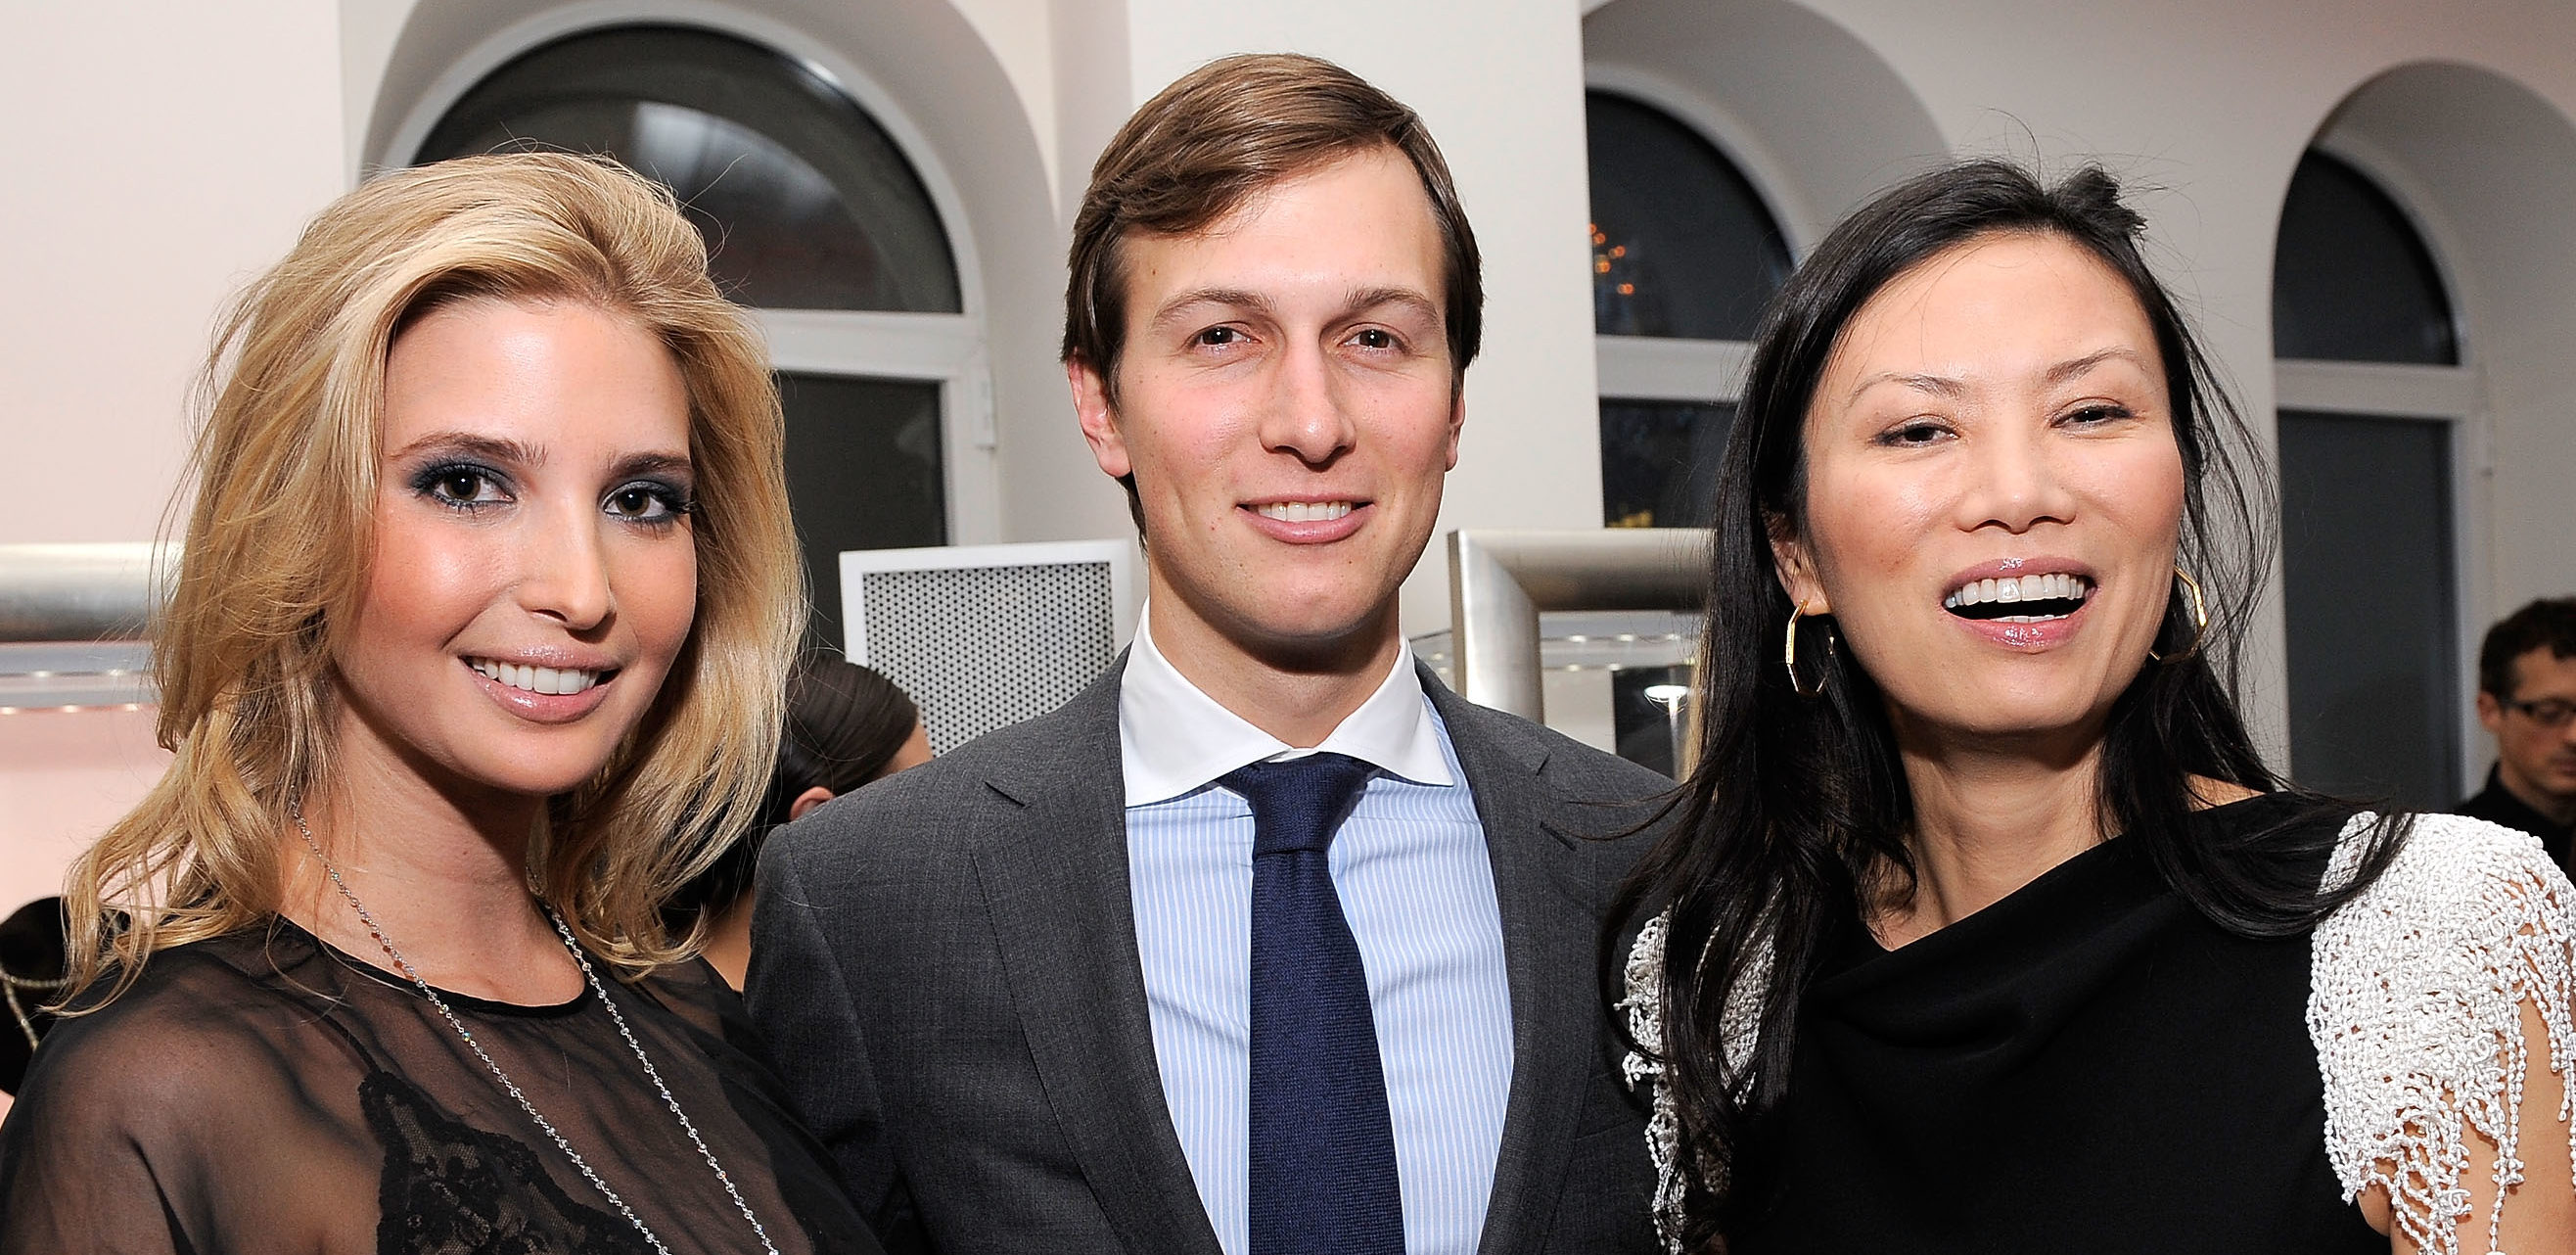 NEW YORK - MARCH 01: Entrepreneur and socialite Ivanka Trump, businessman Jared Kushner and Wendi Murdoch attend the Ivanka Trump Fine Jewelry Collection Launch Benefitting The United Nations Foundation at Trump Park Avenue on March 1, 2010 in New York City. (Photo by Jemal Countess/Getty Images)